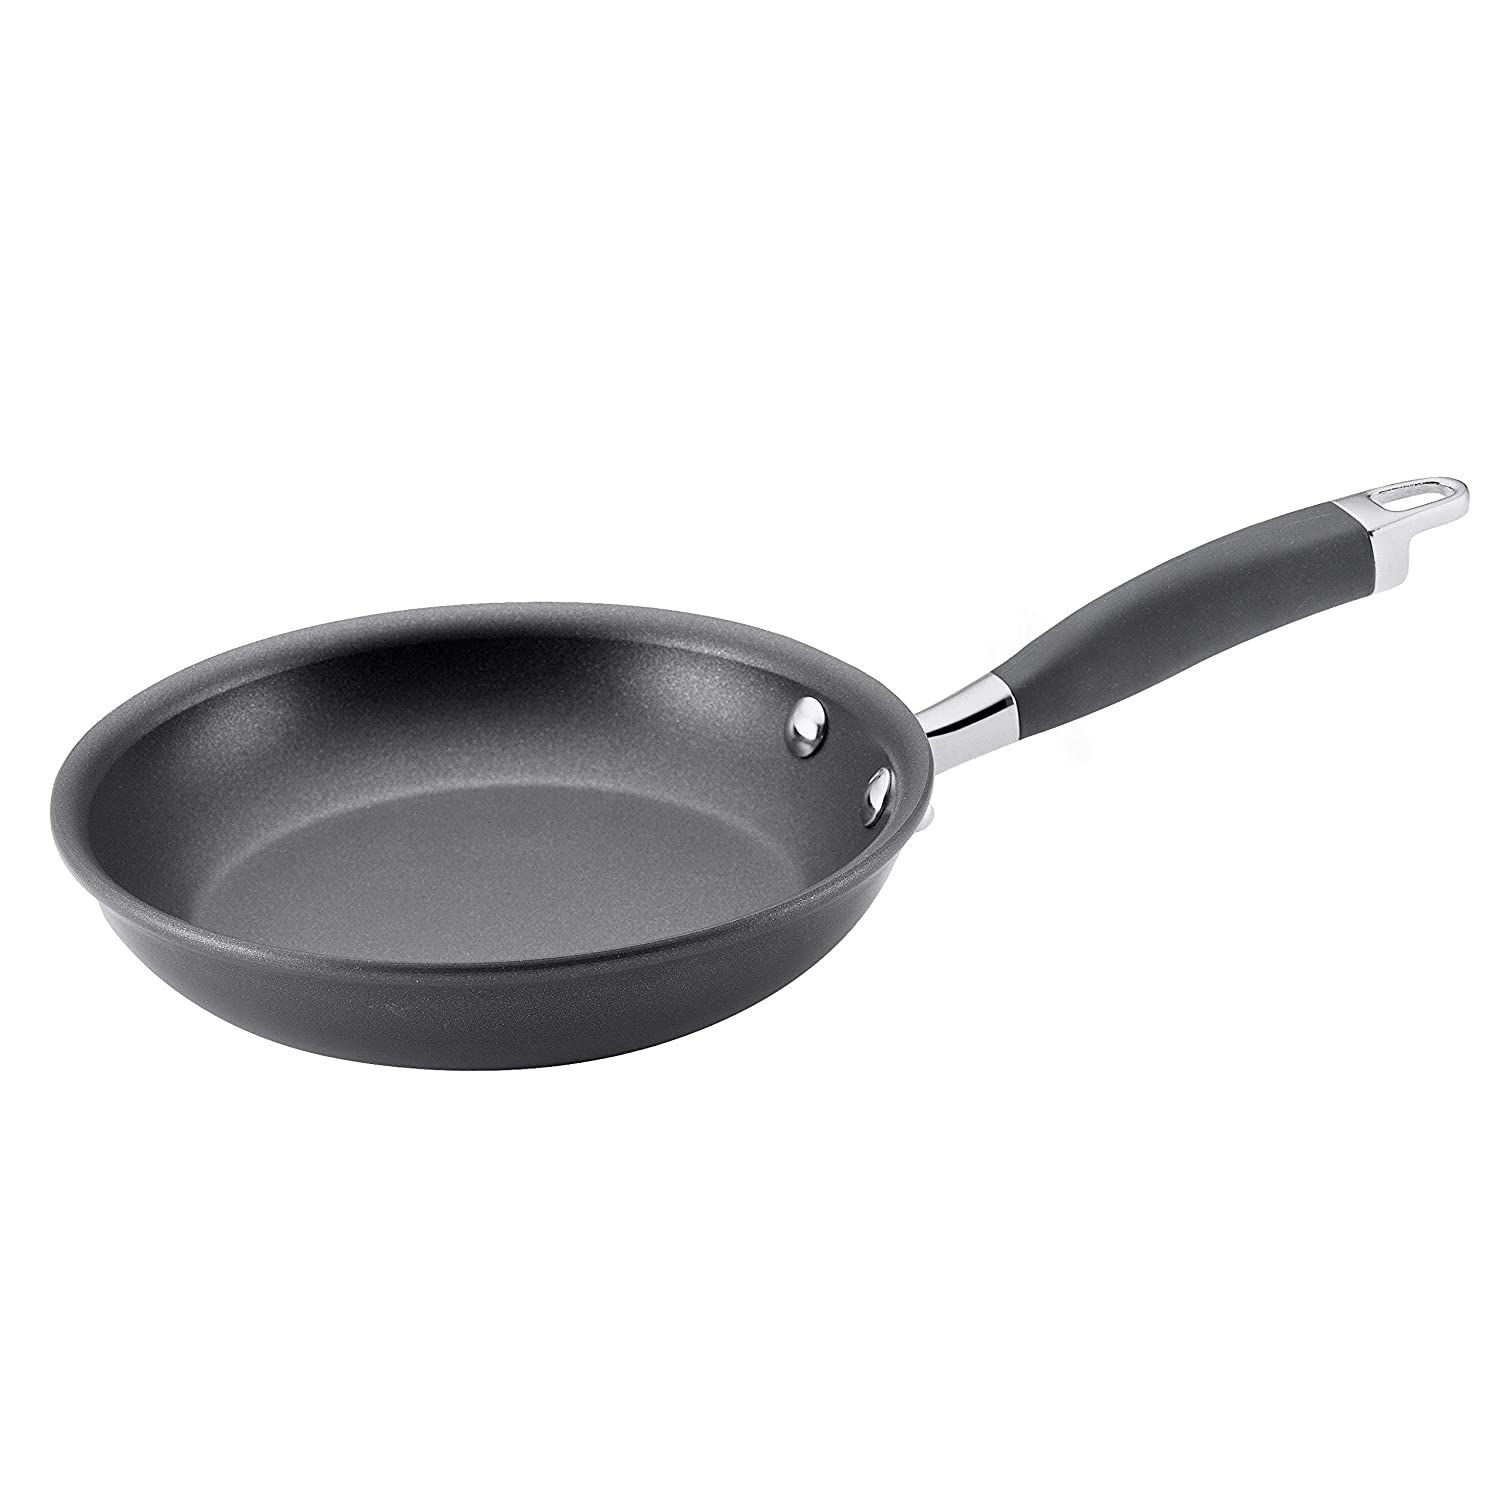 Top 5 Best Frying Pans (2020 Reviews & Buying Guide) 5